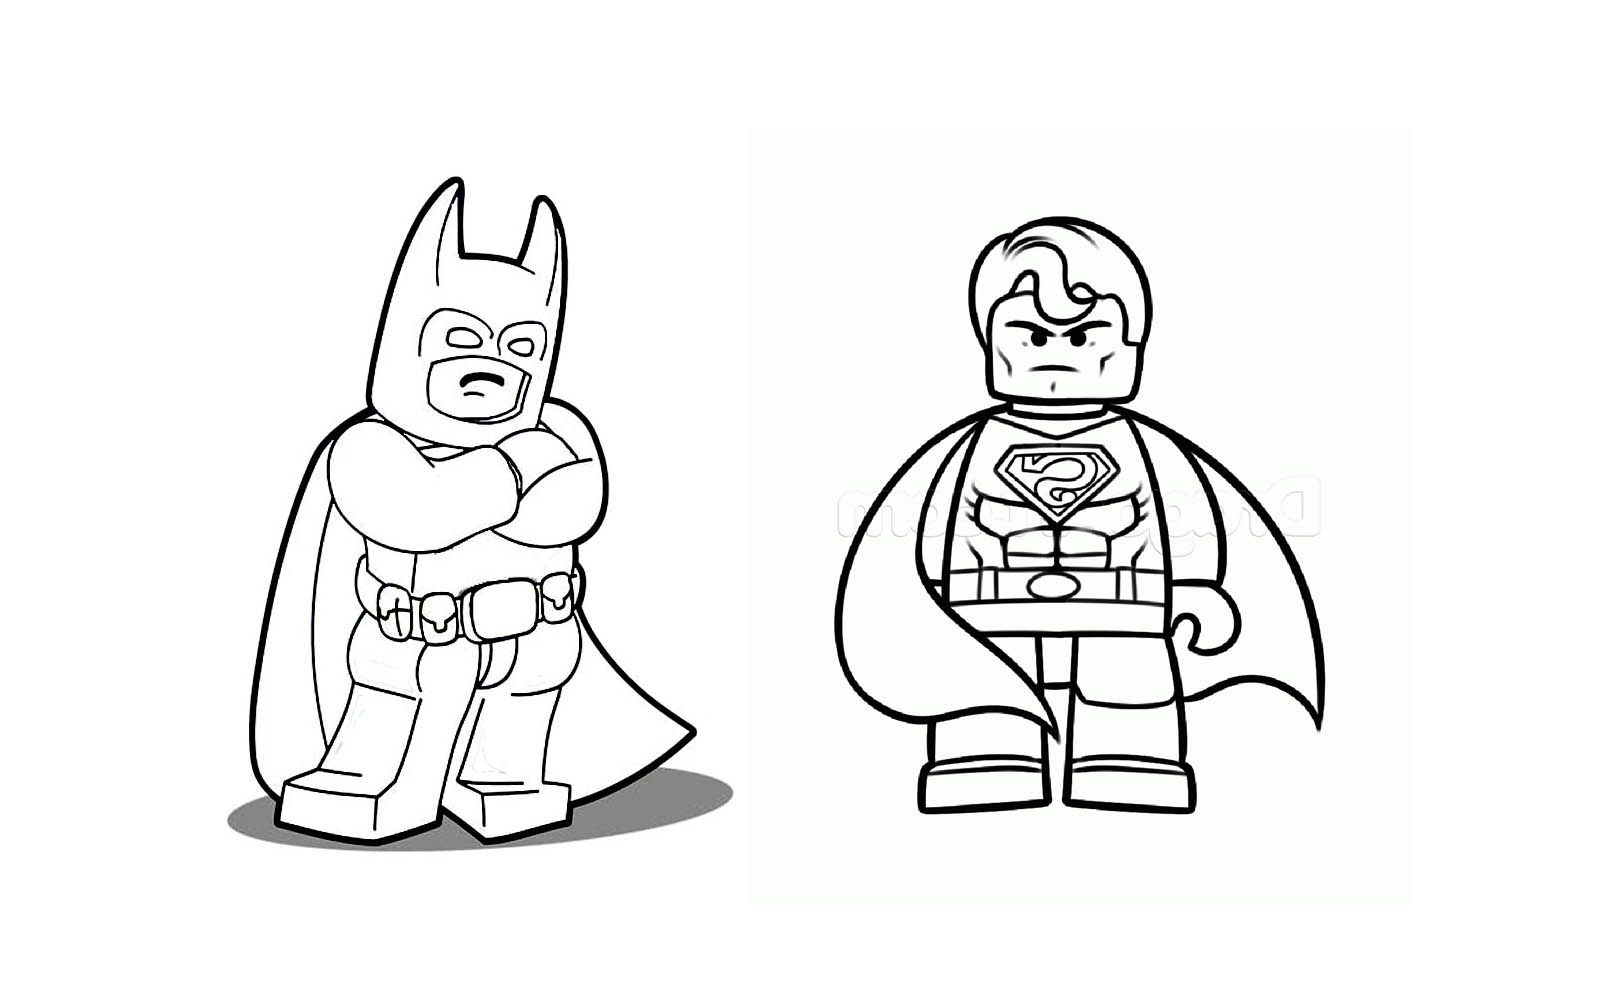 Coloriage Lego Marvel Image De Personnages Animes Id 25